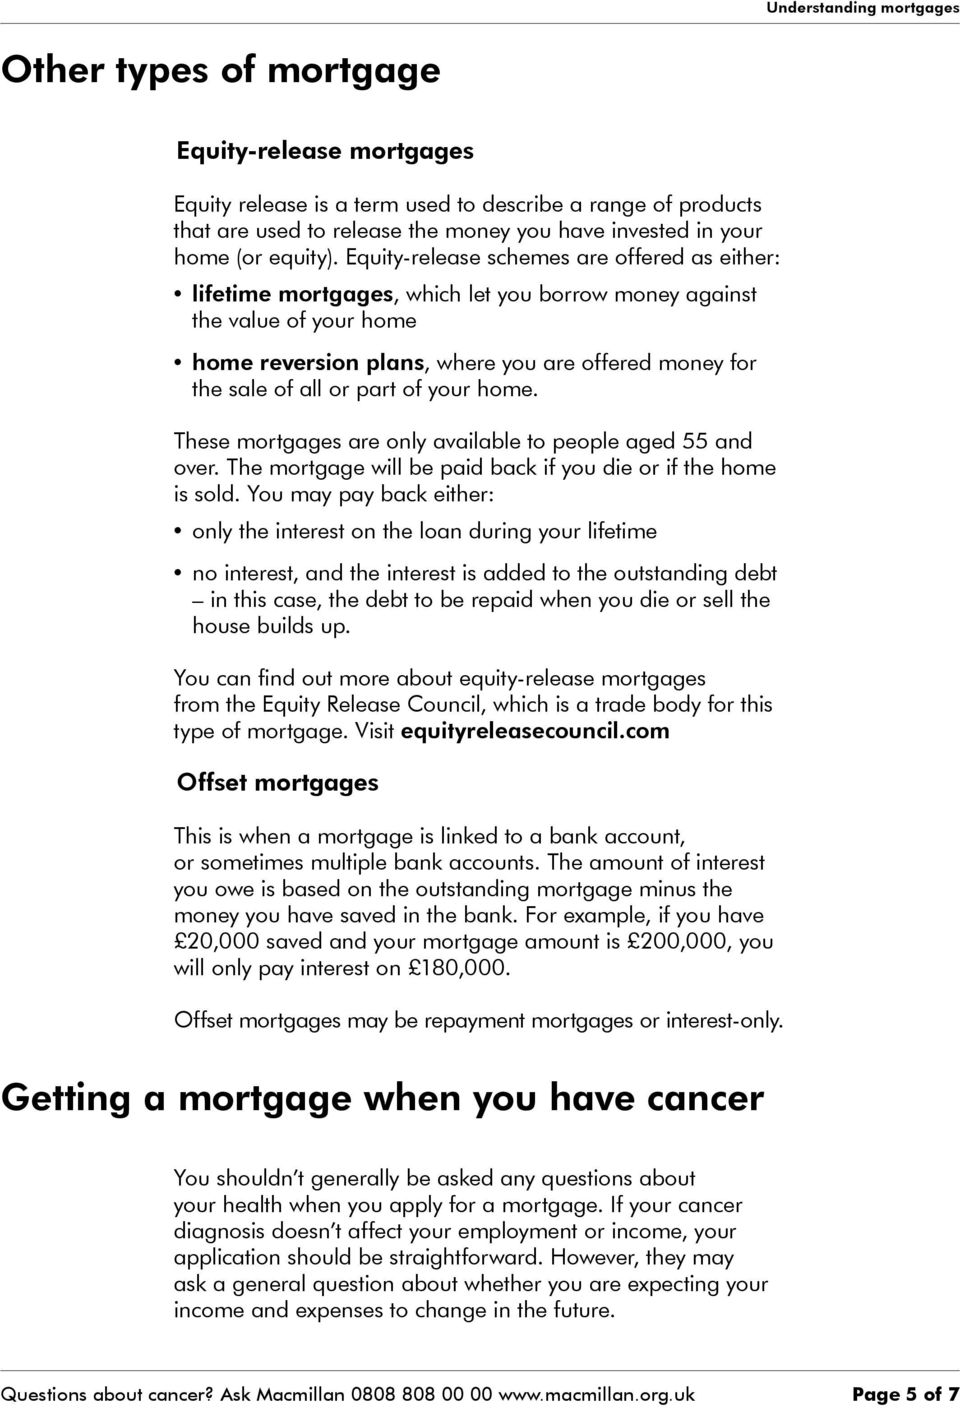 part of your home. These mortgages are only available to people aged 55 and over. The mortgage will be paid back if you die or if the home is sold.